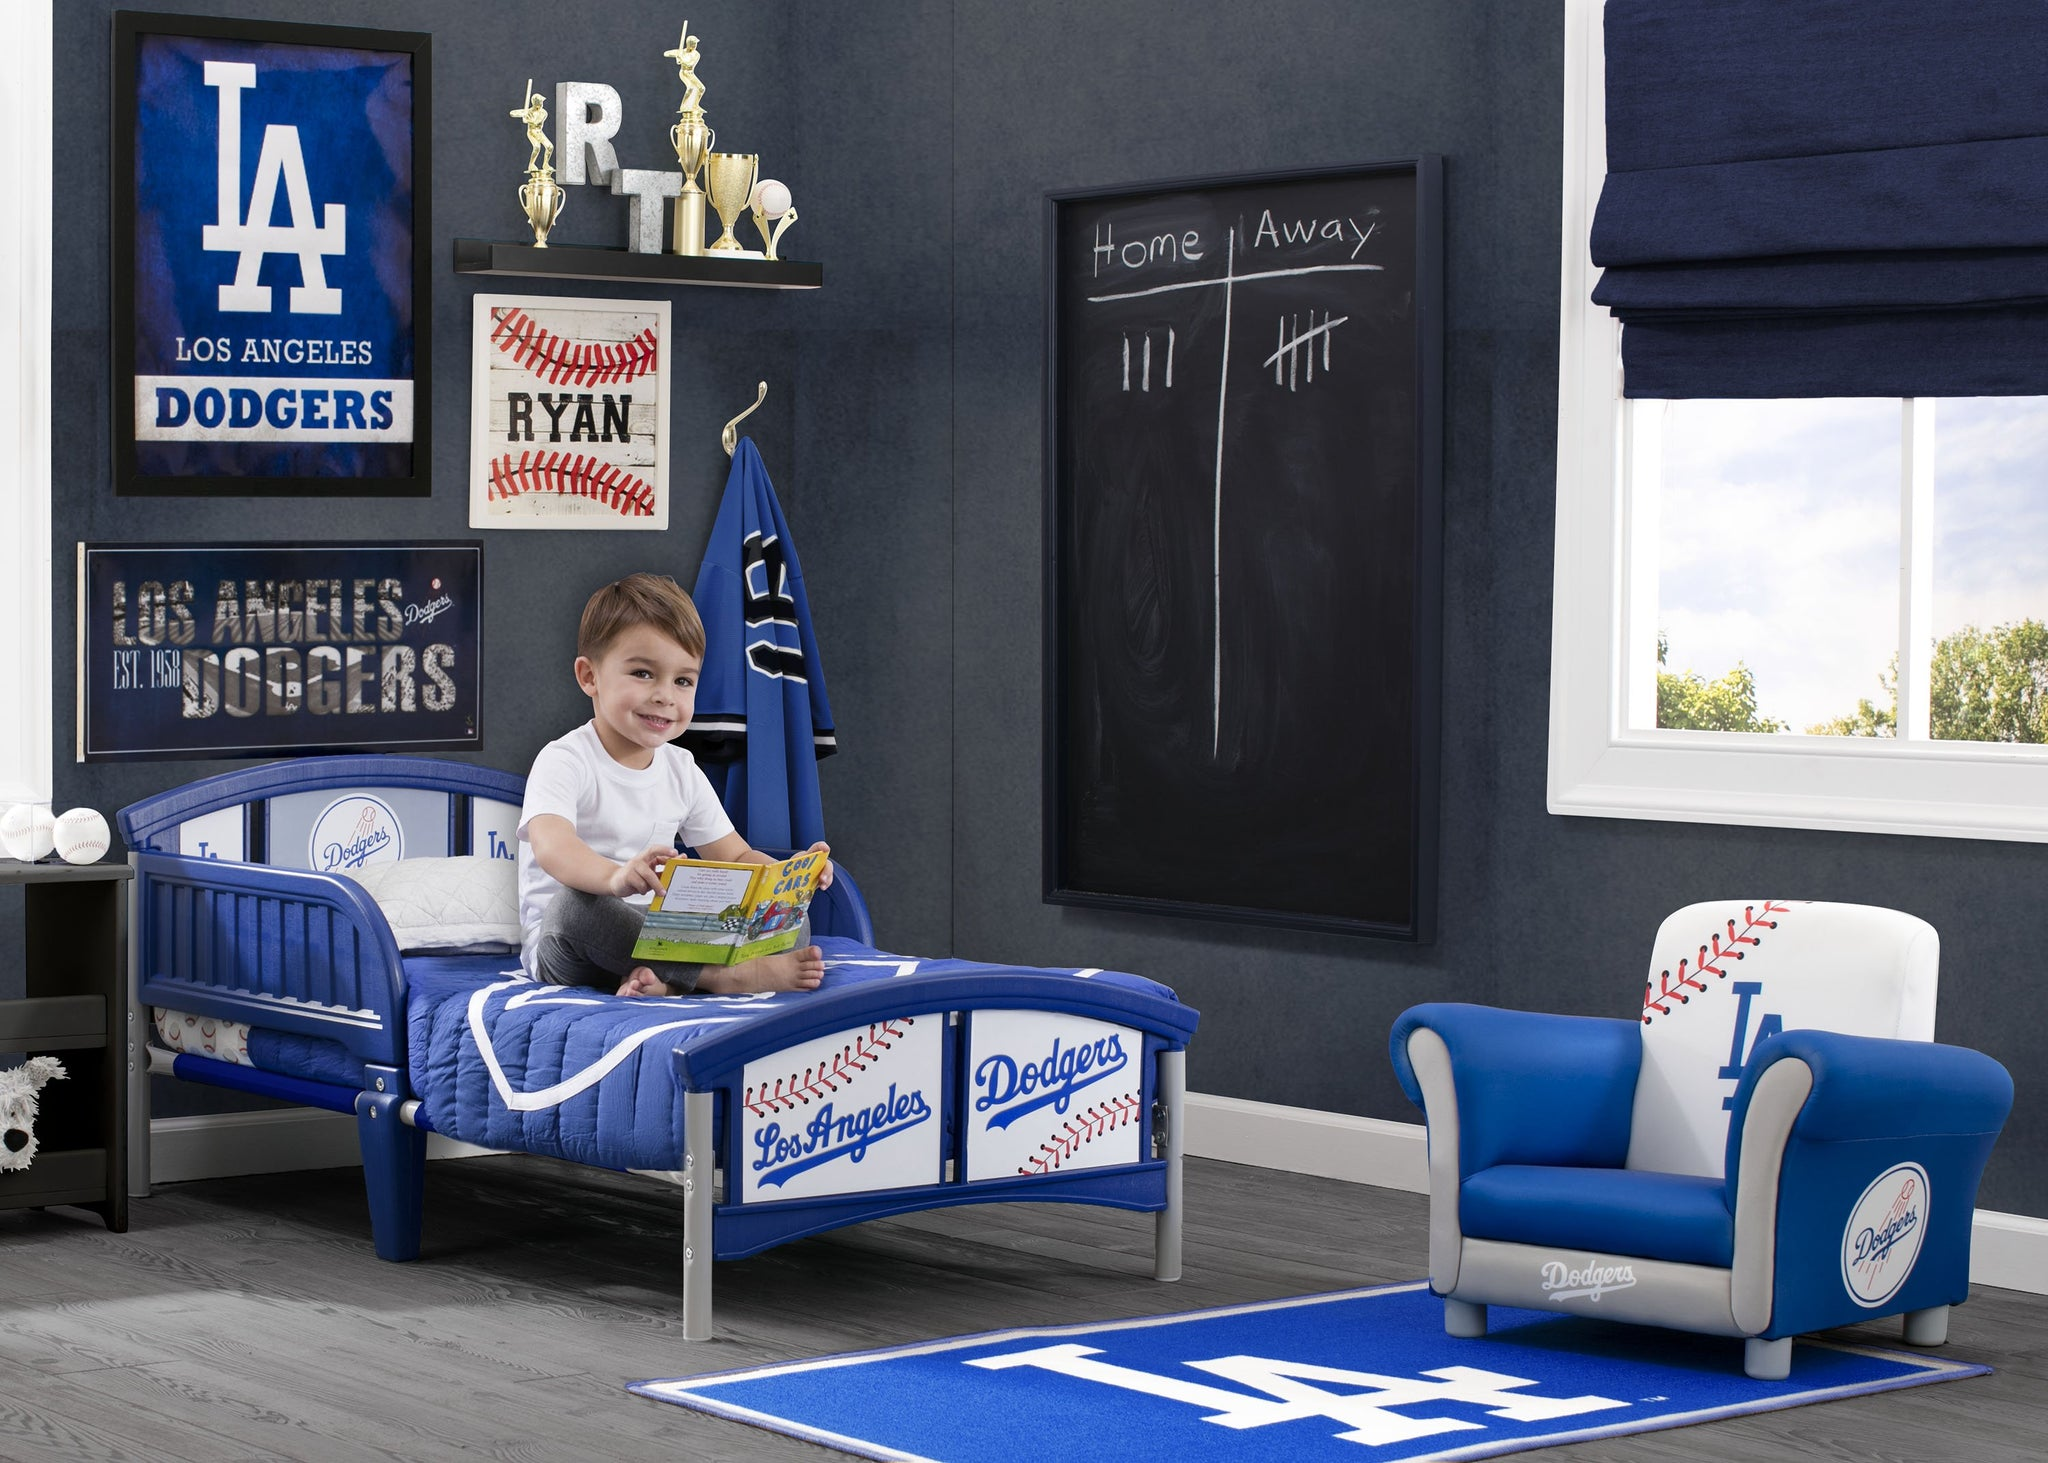 Delta Children Los Angeles Dodgers (1231) Soft Area Rug with Non-Slip Backing (TR9812LAD), Hangtag, a1a